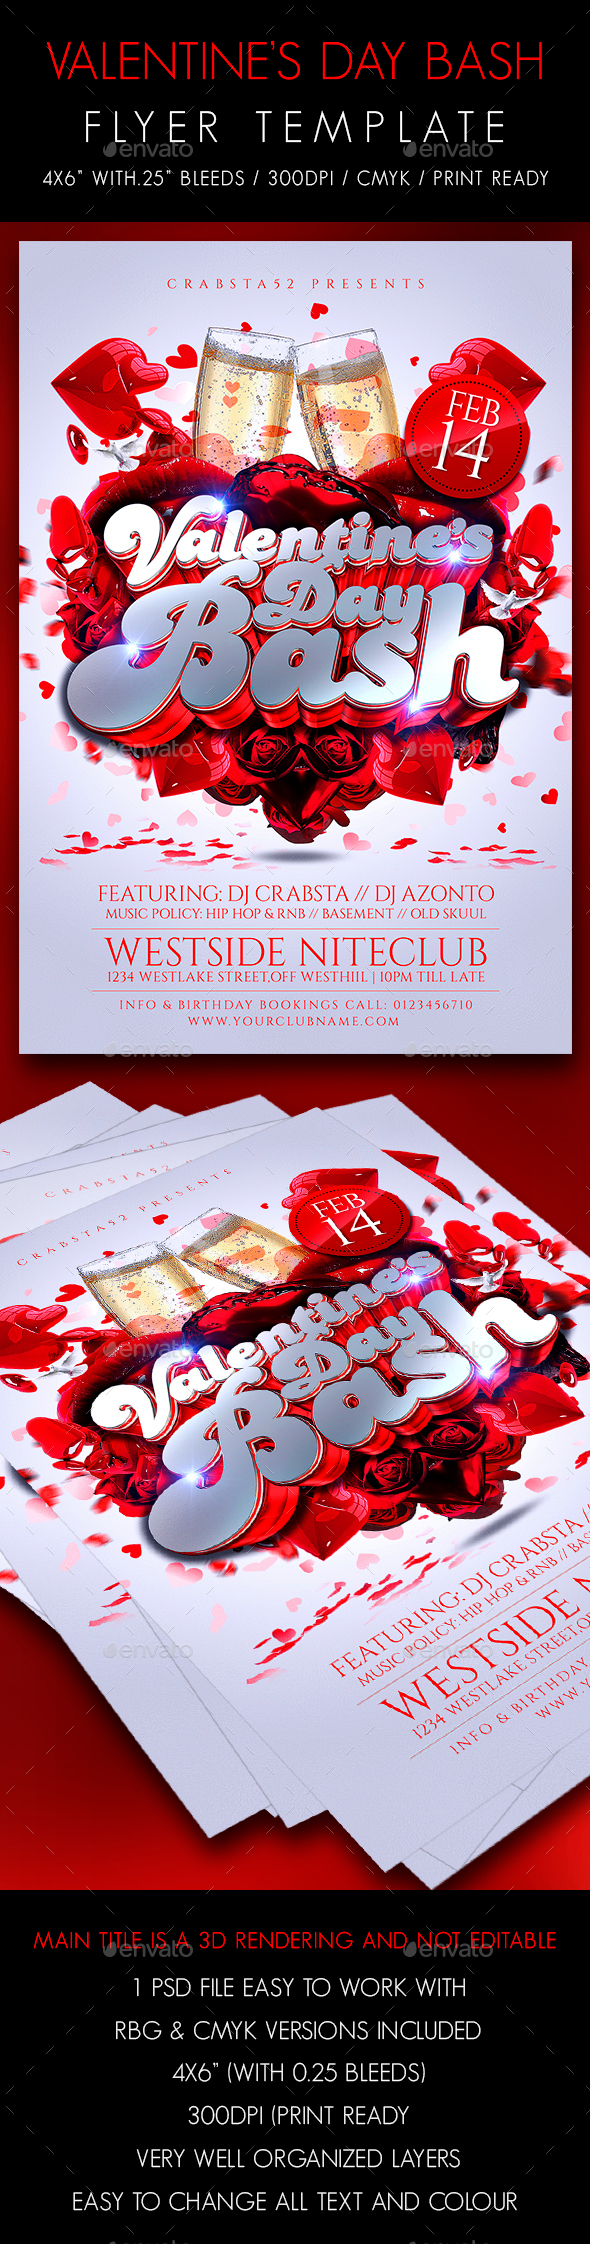 Valentines Day Bash Flyer Template - Flyers Print Templates